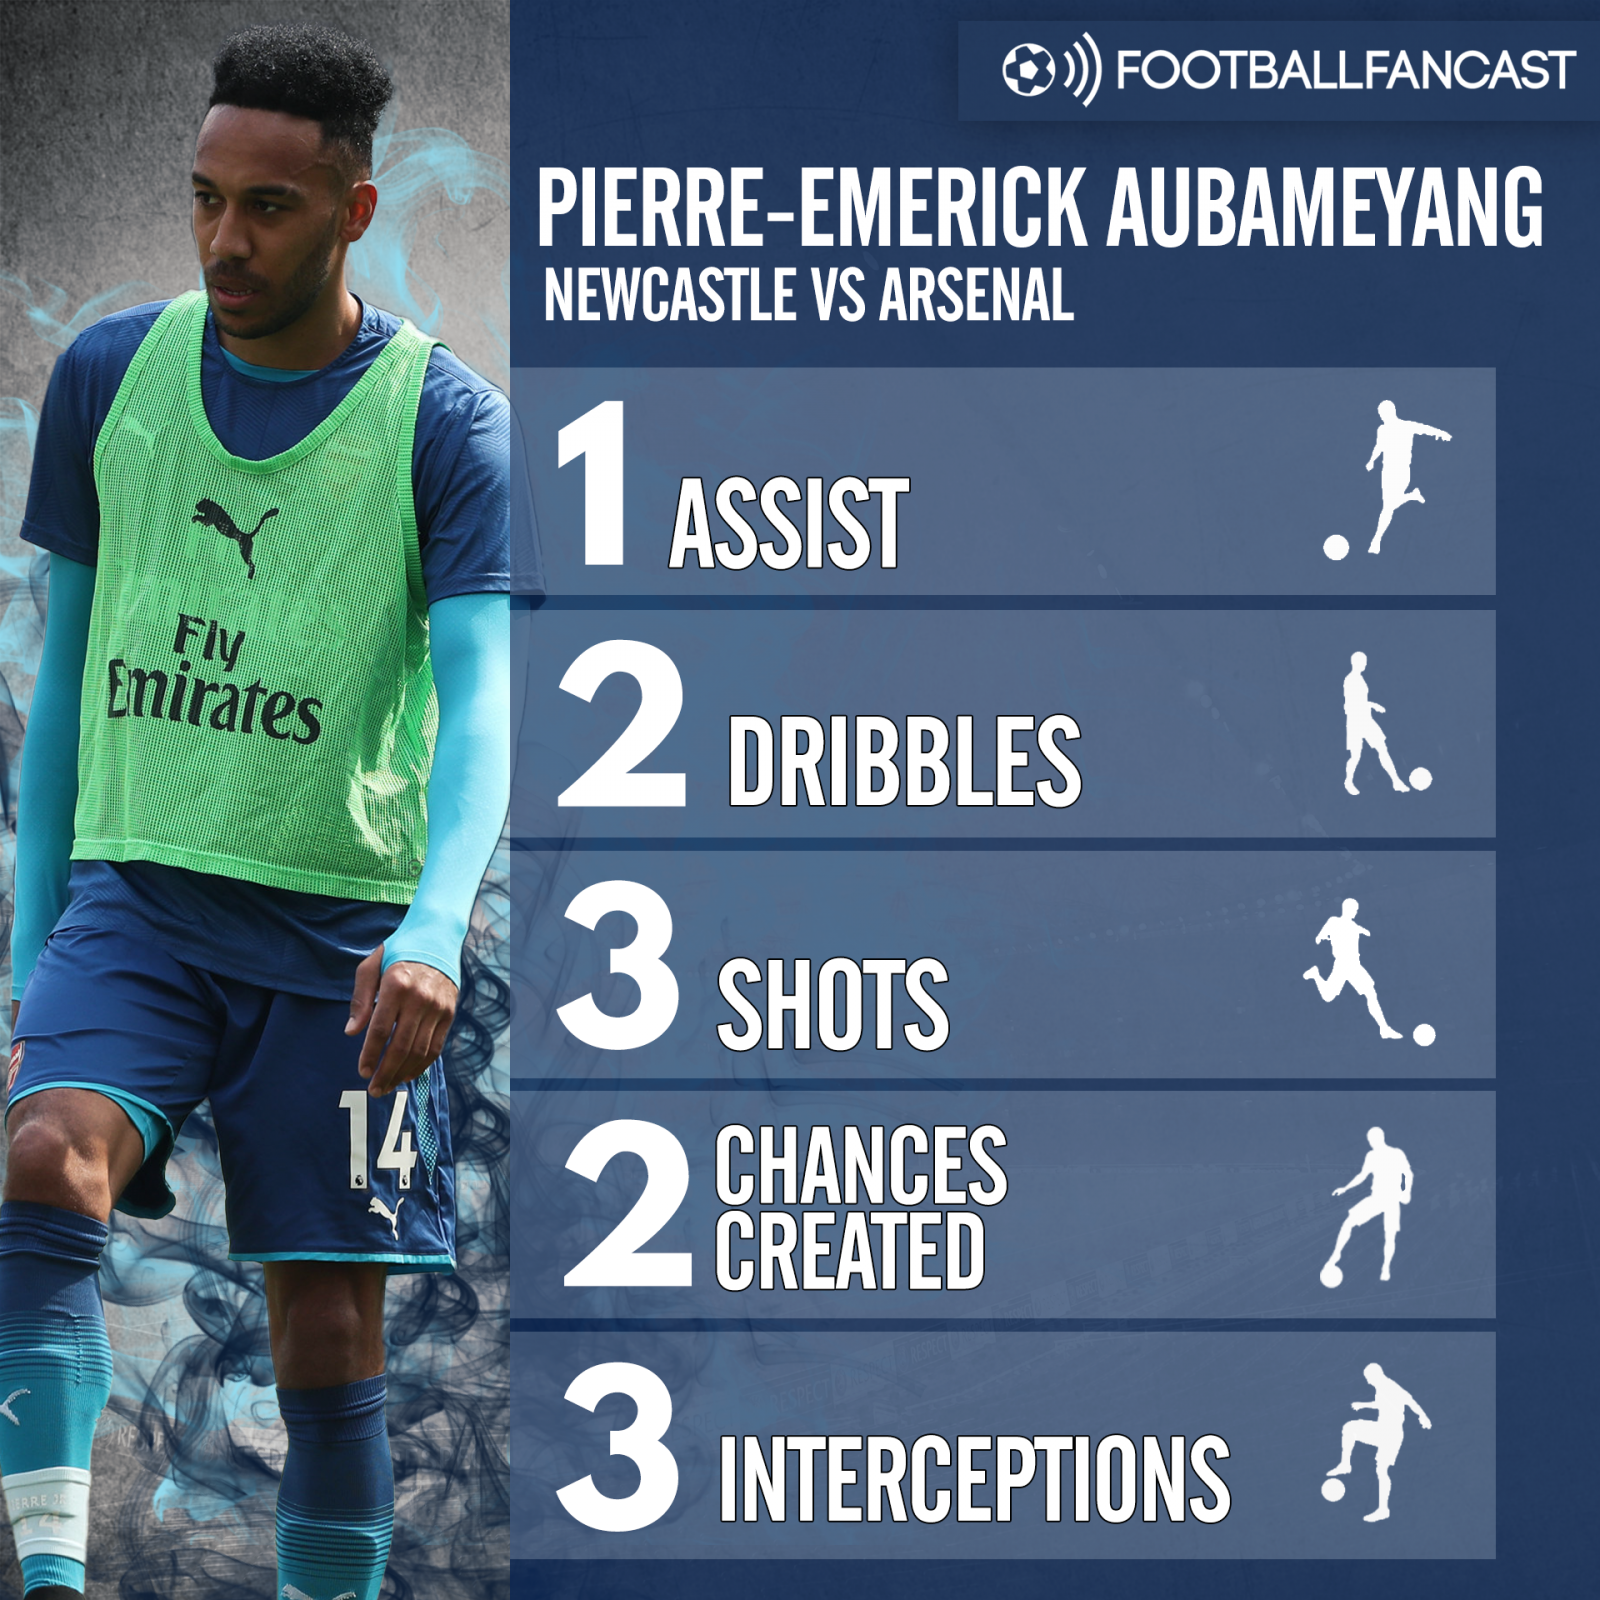 Pierre-Emerick Aubameyang's stats from Arsenal's 2-1 loss to Newcastle